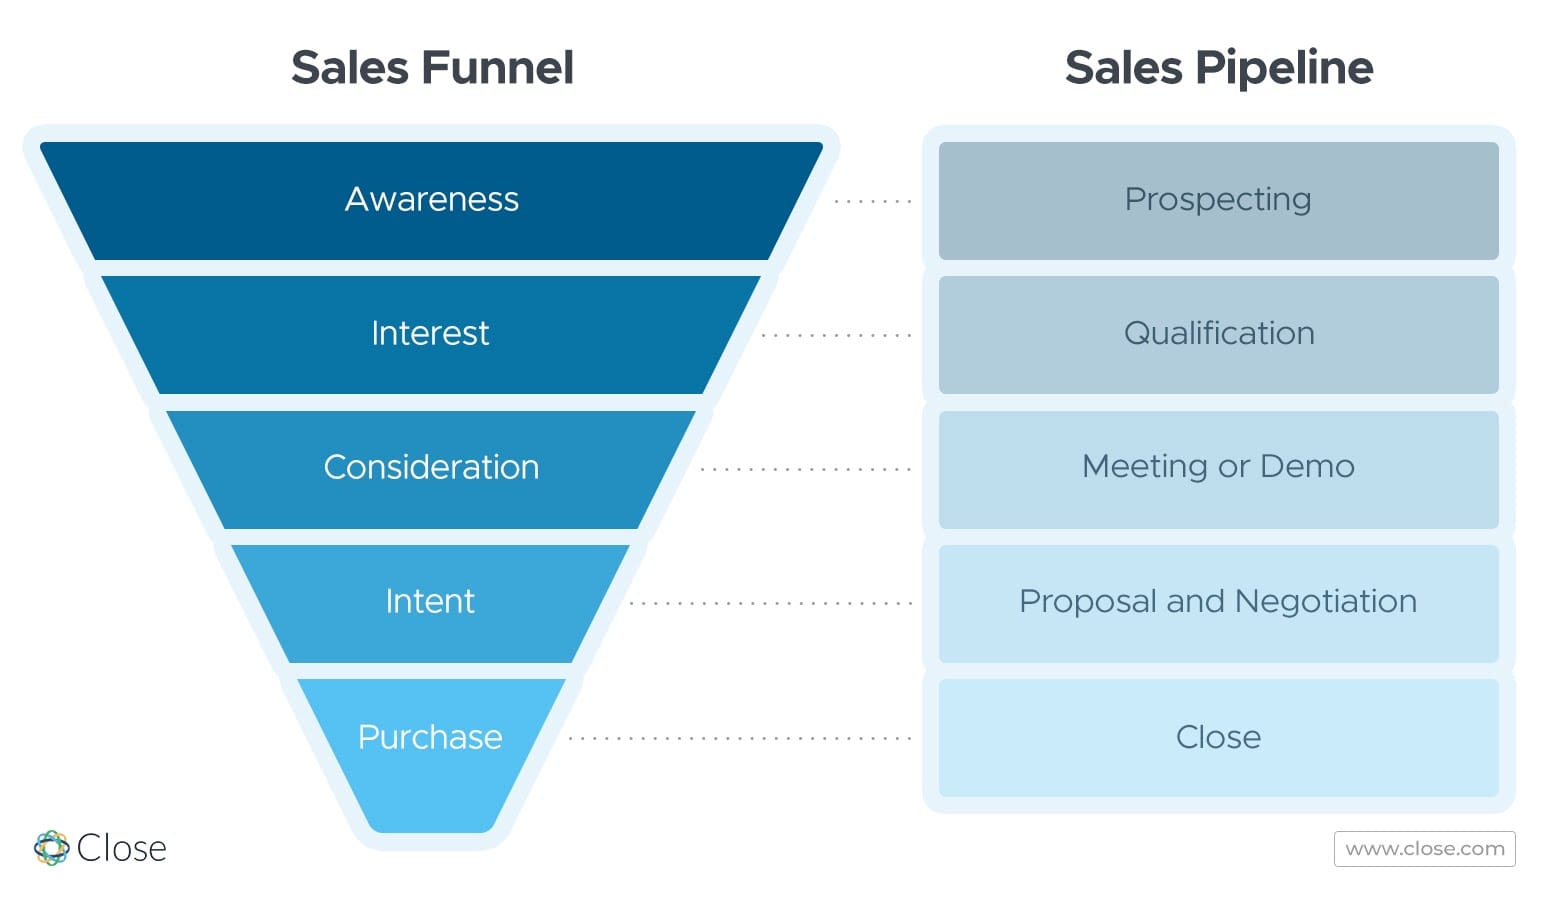 Sales funnel and sales pipeline comparison